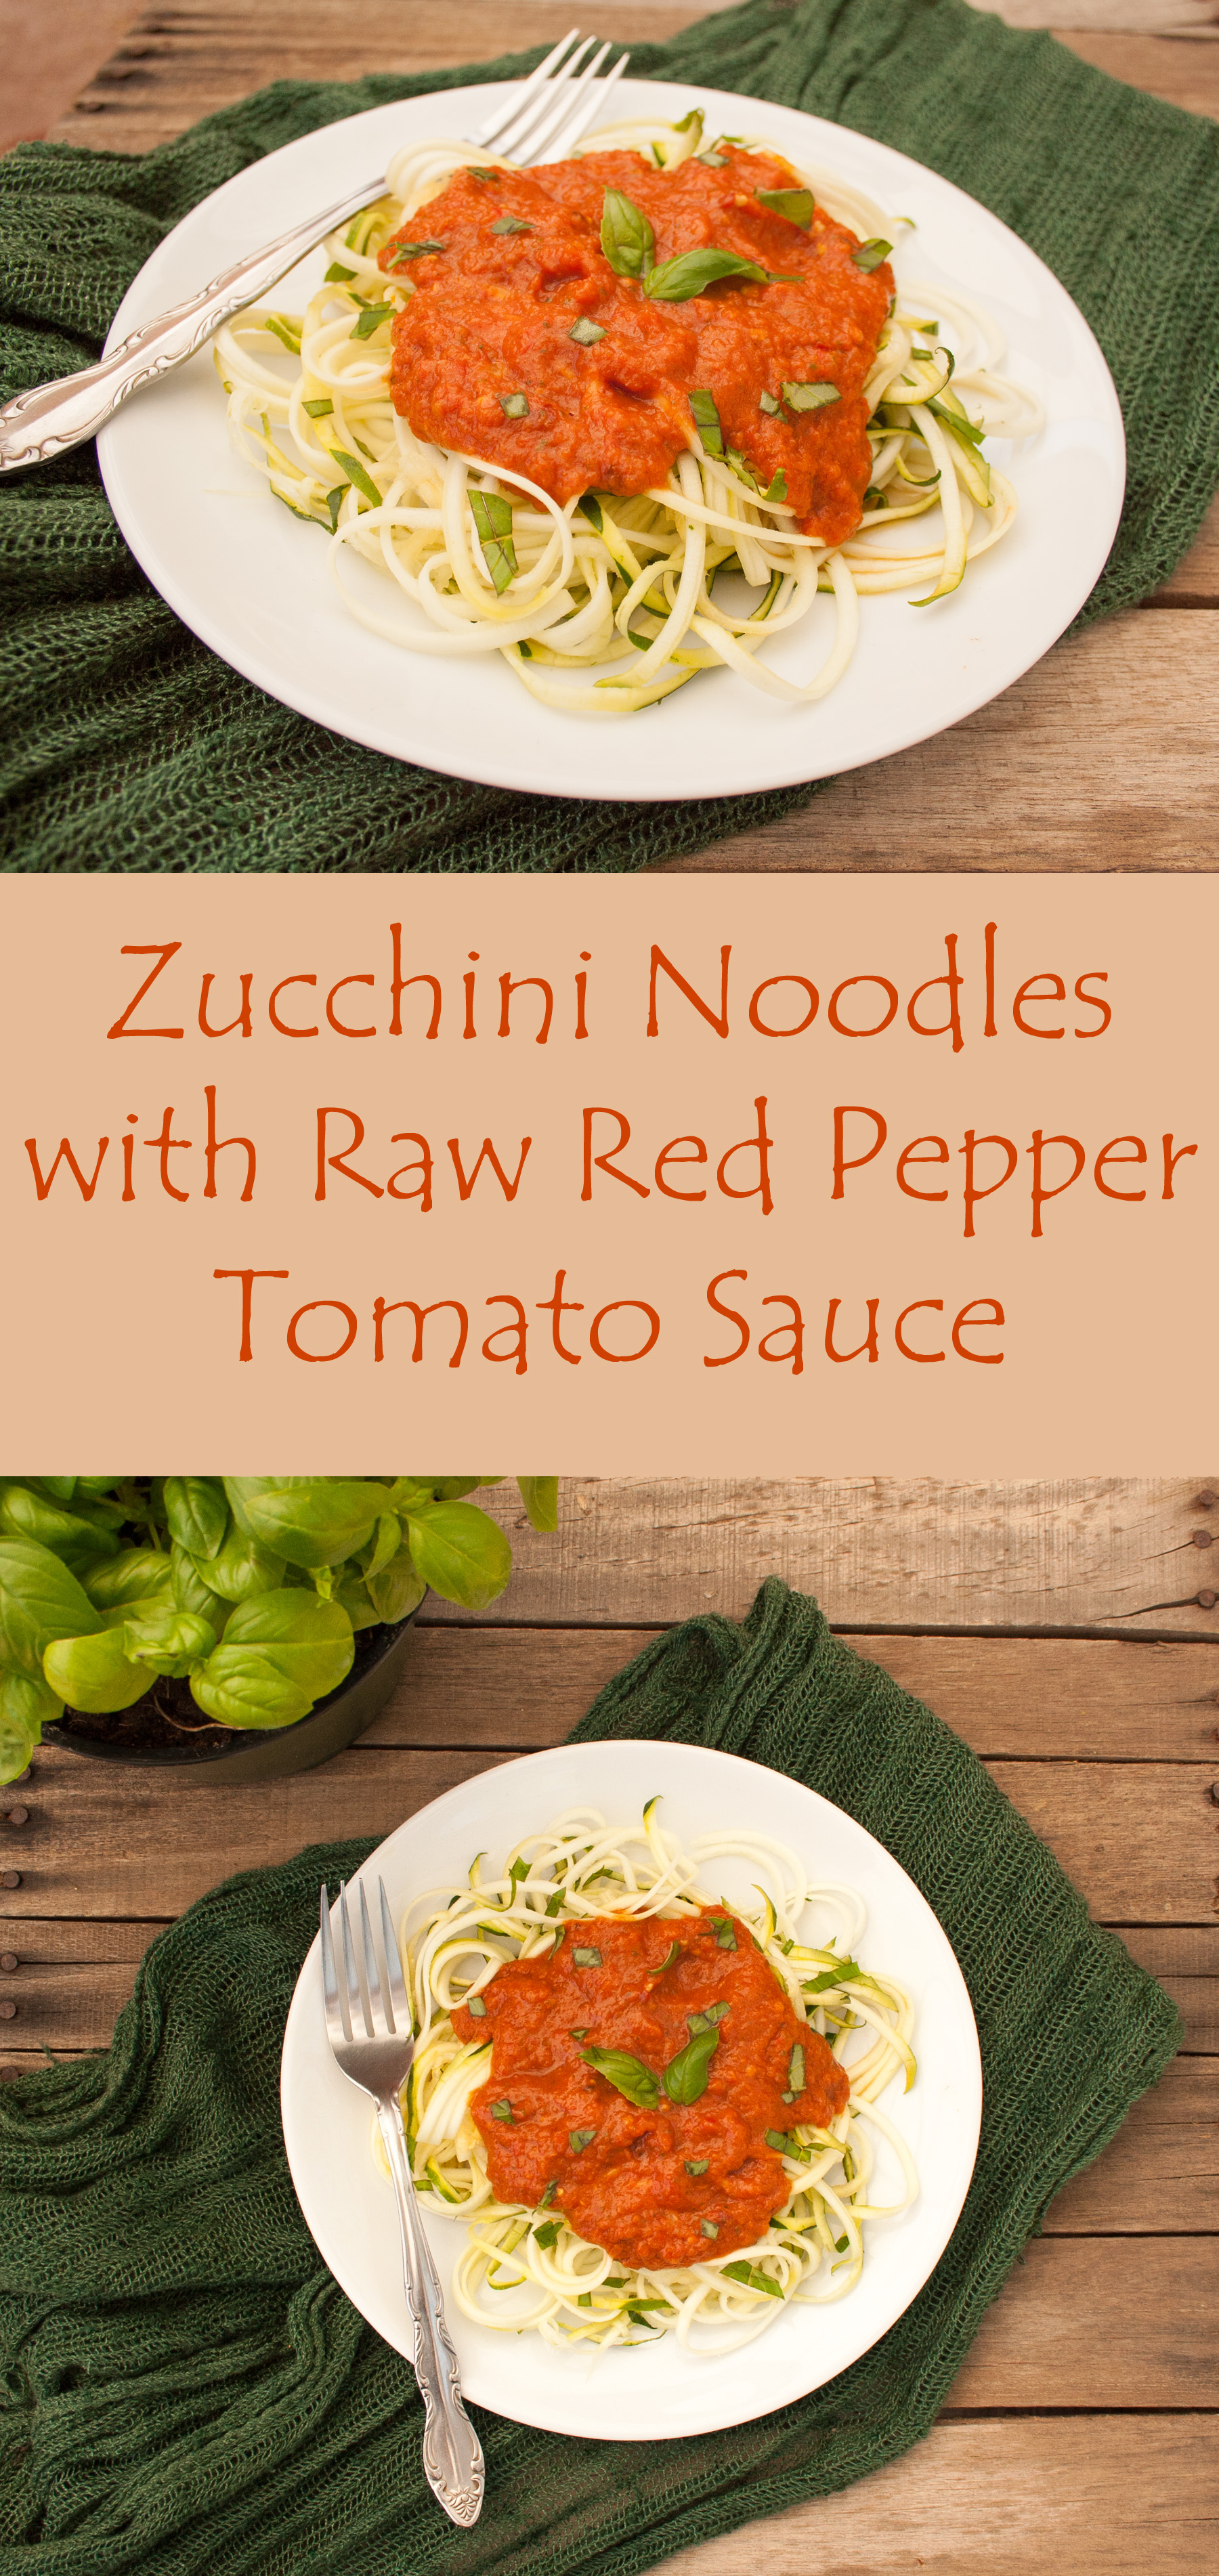 Zucchini noodles with raw red pepper sauce create mindfully zucchini noodles with raw red pepper sauce collage photo with text forumfinder Images